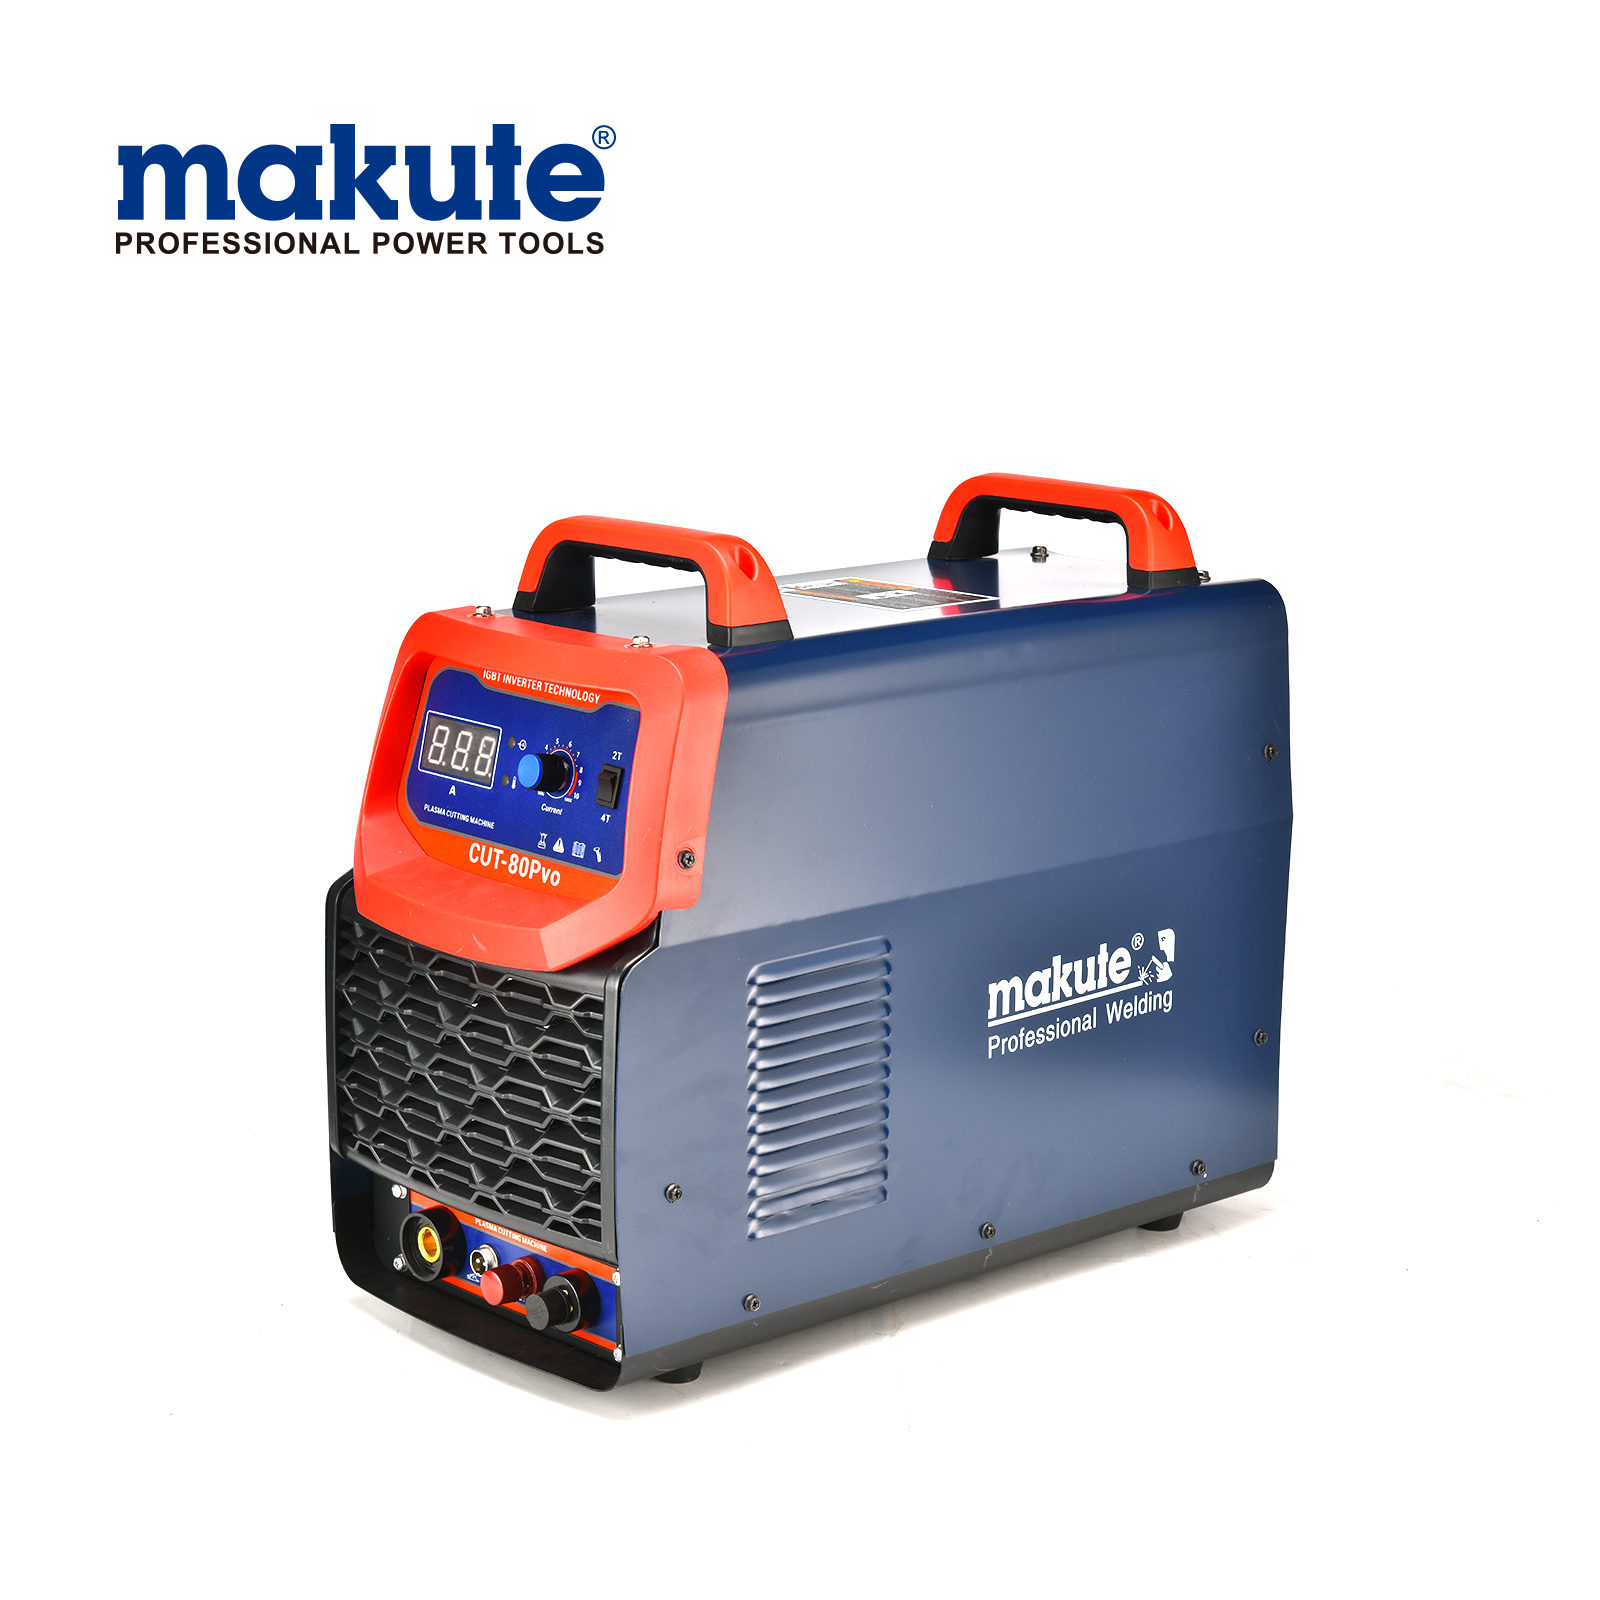 welding machine makute industry machine CUT-80PVO welder